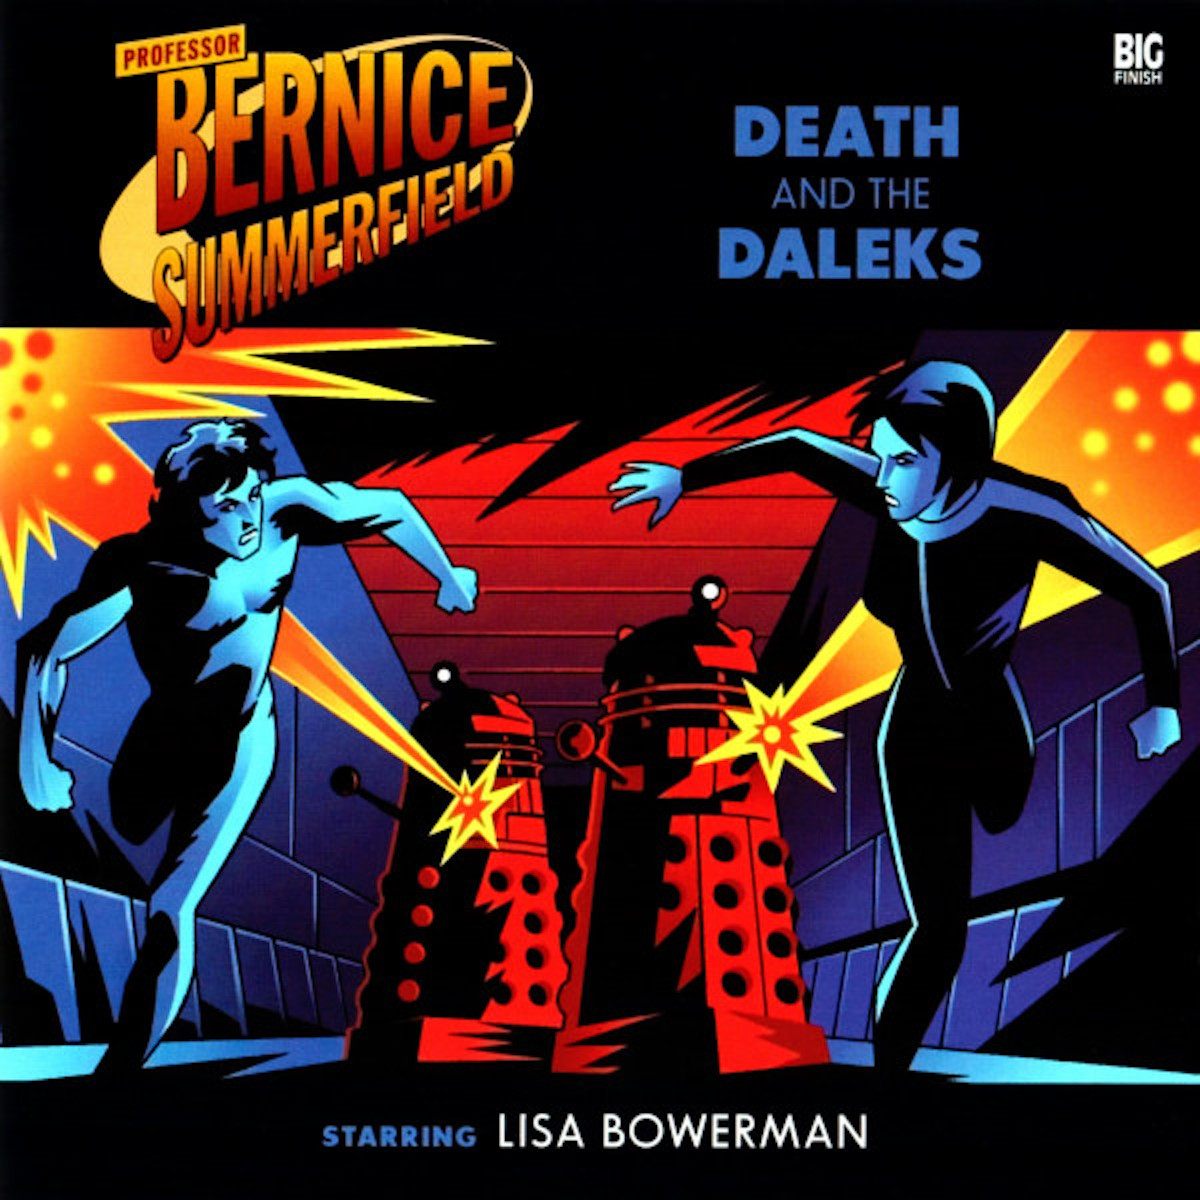 Death and Daleks